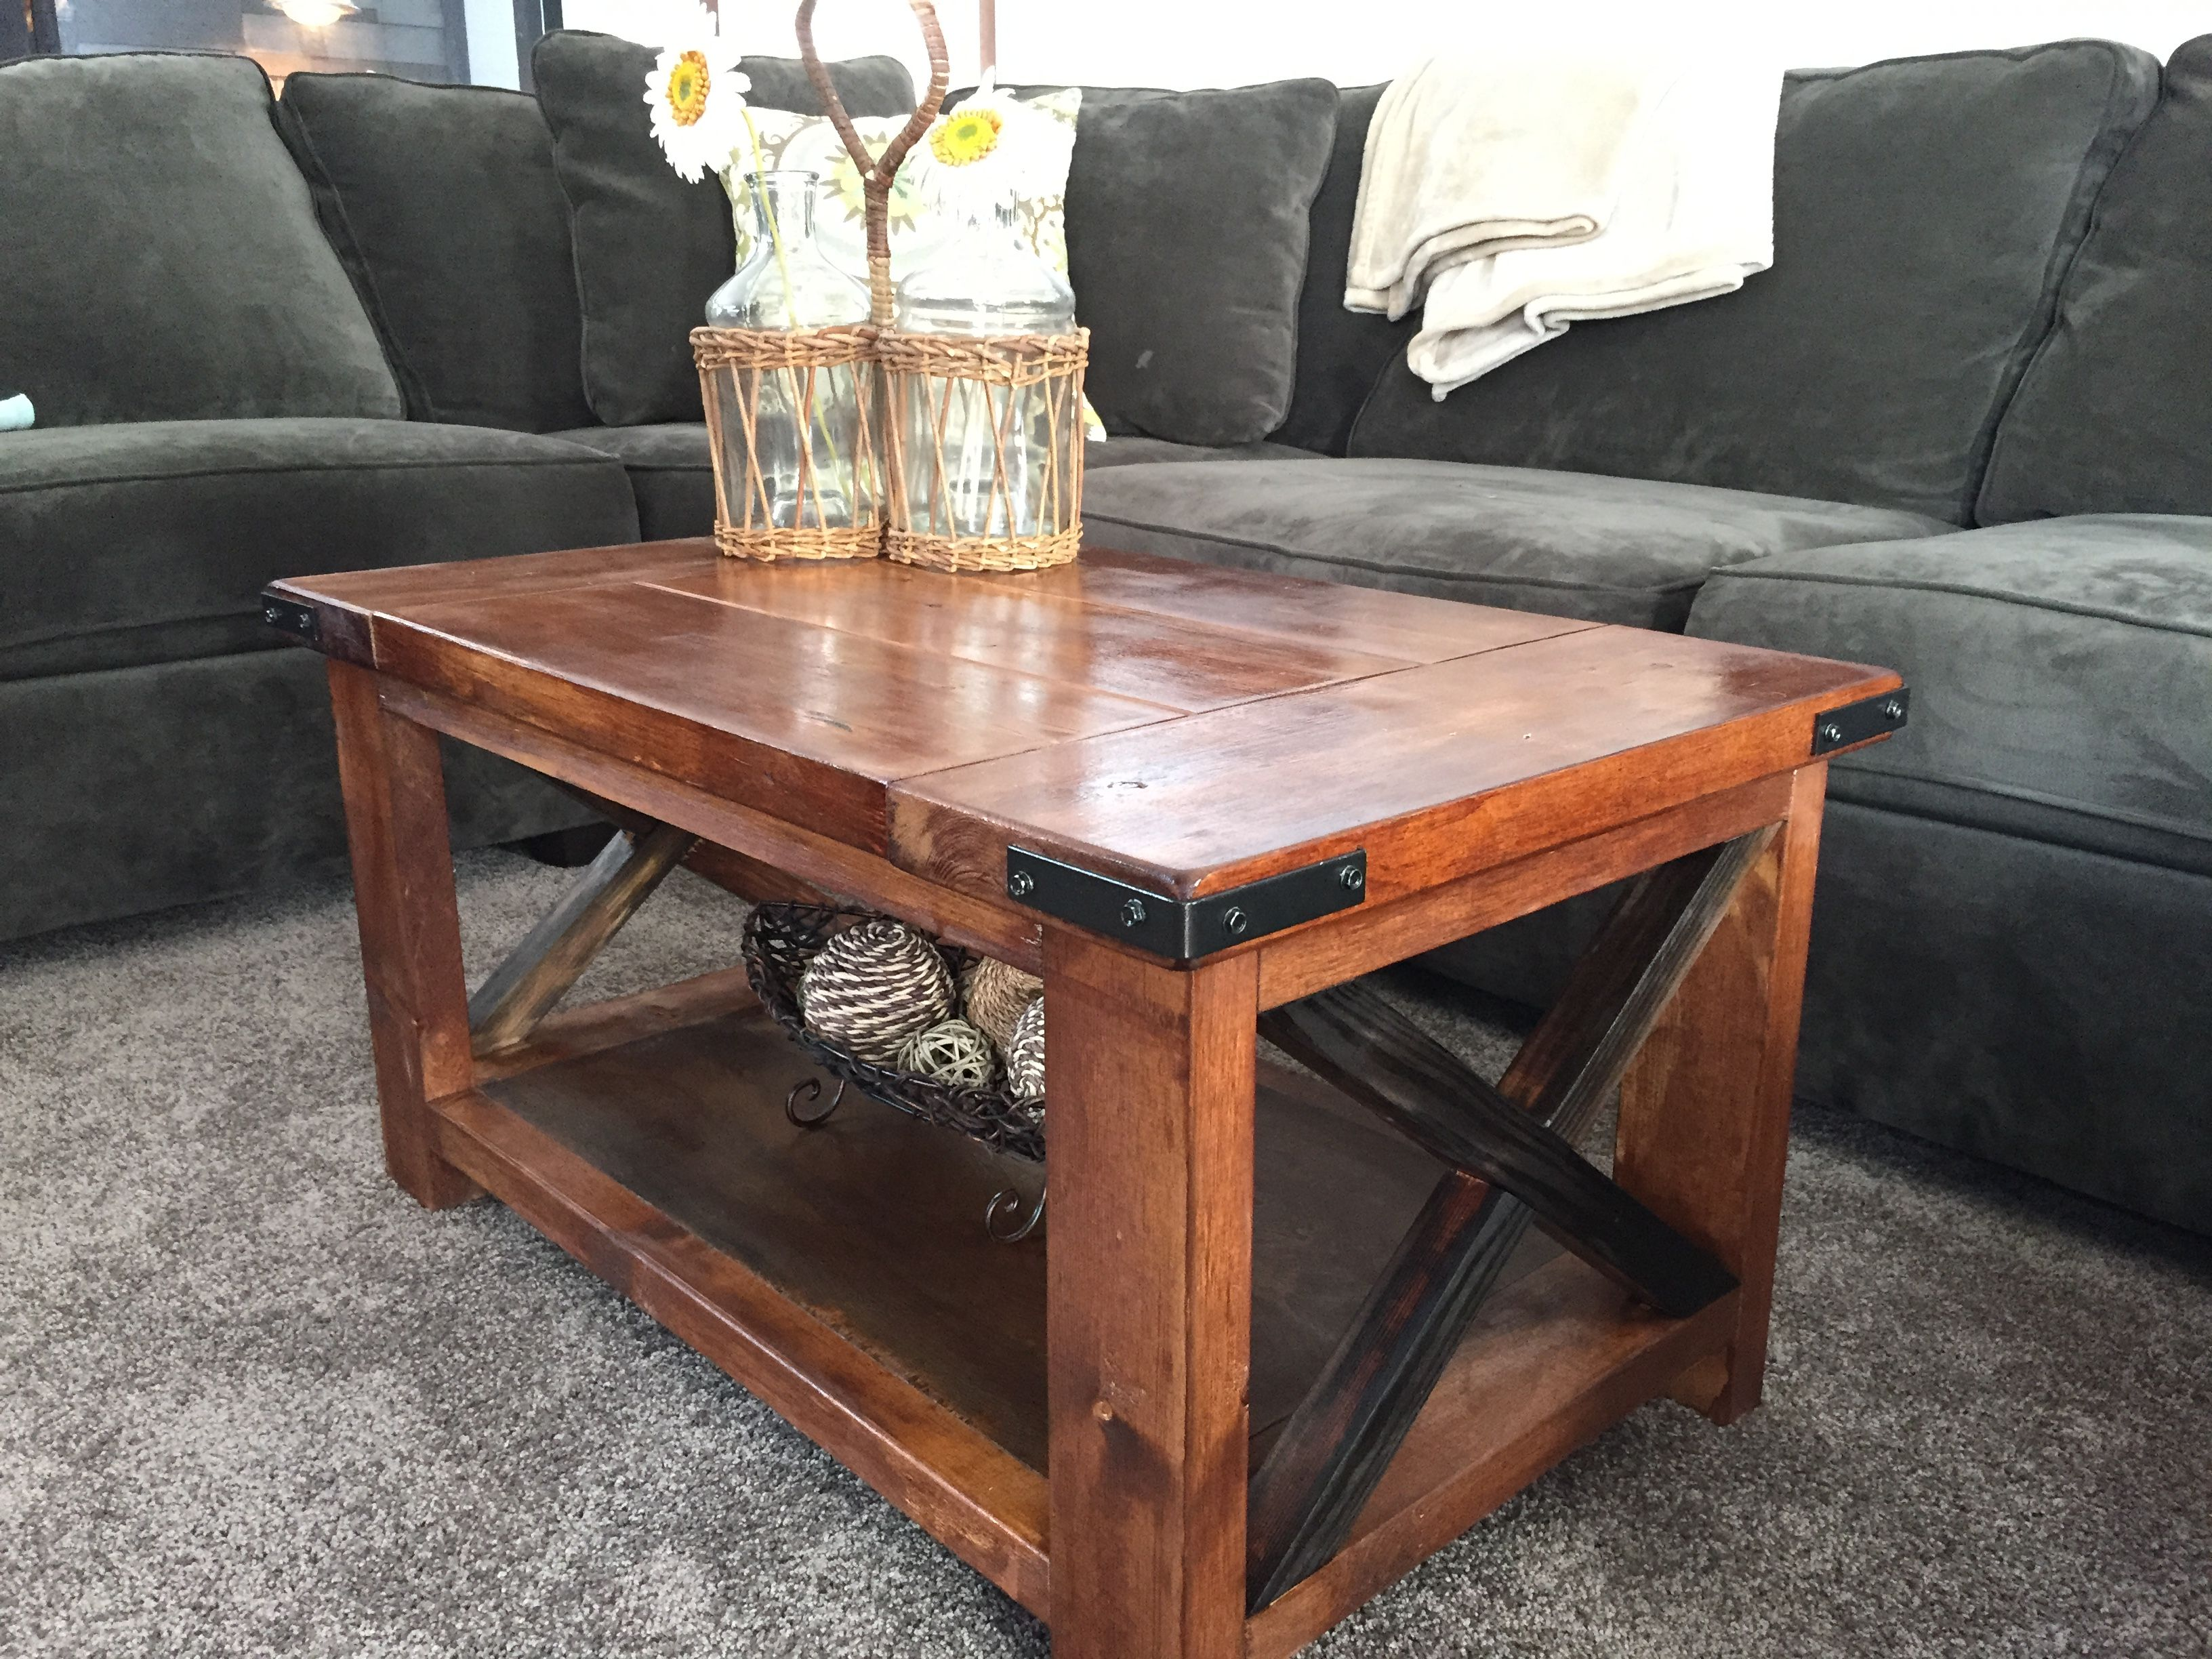 Handmade Rustic Coffee Table By Richter Ranch Custom Designs